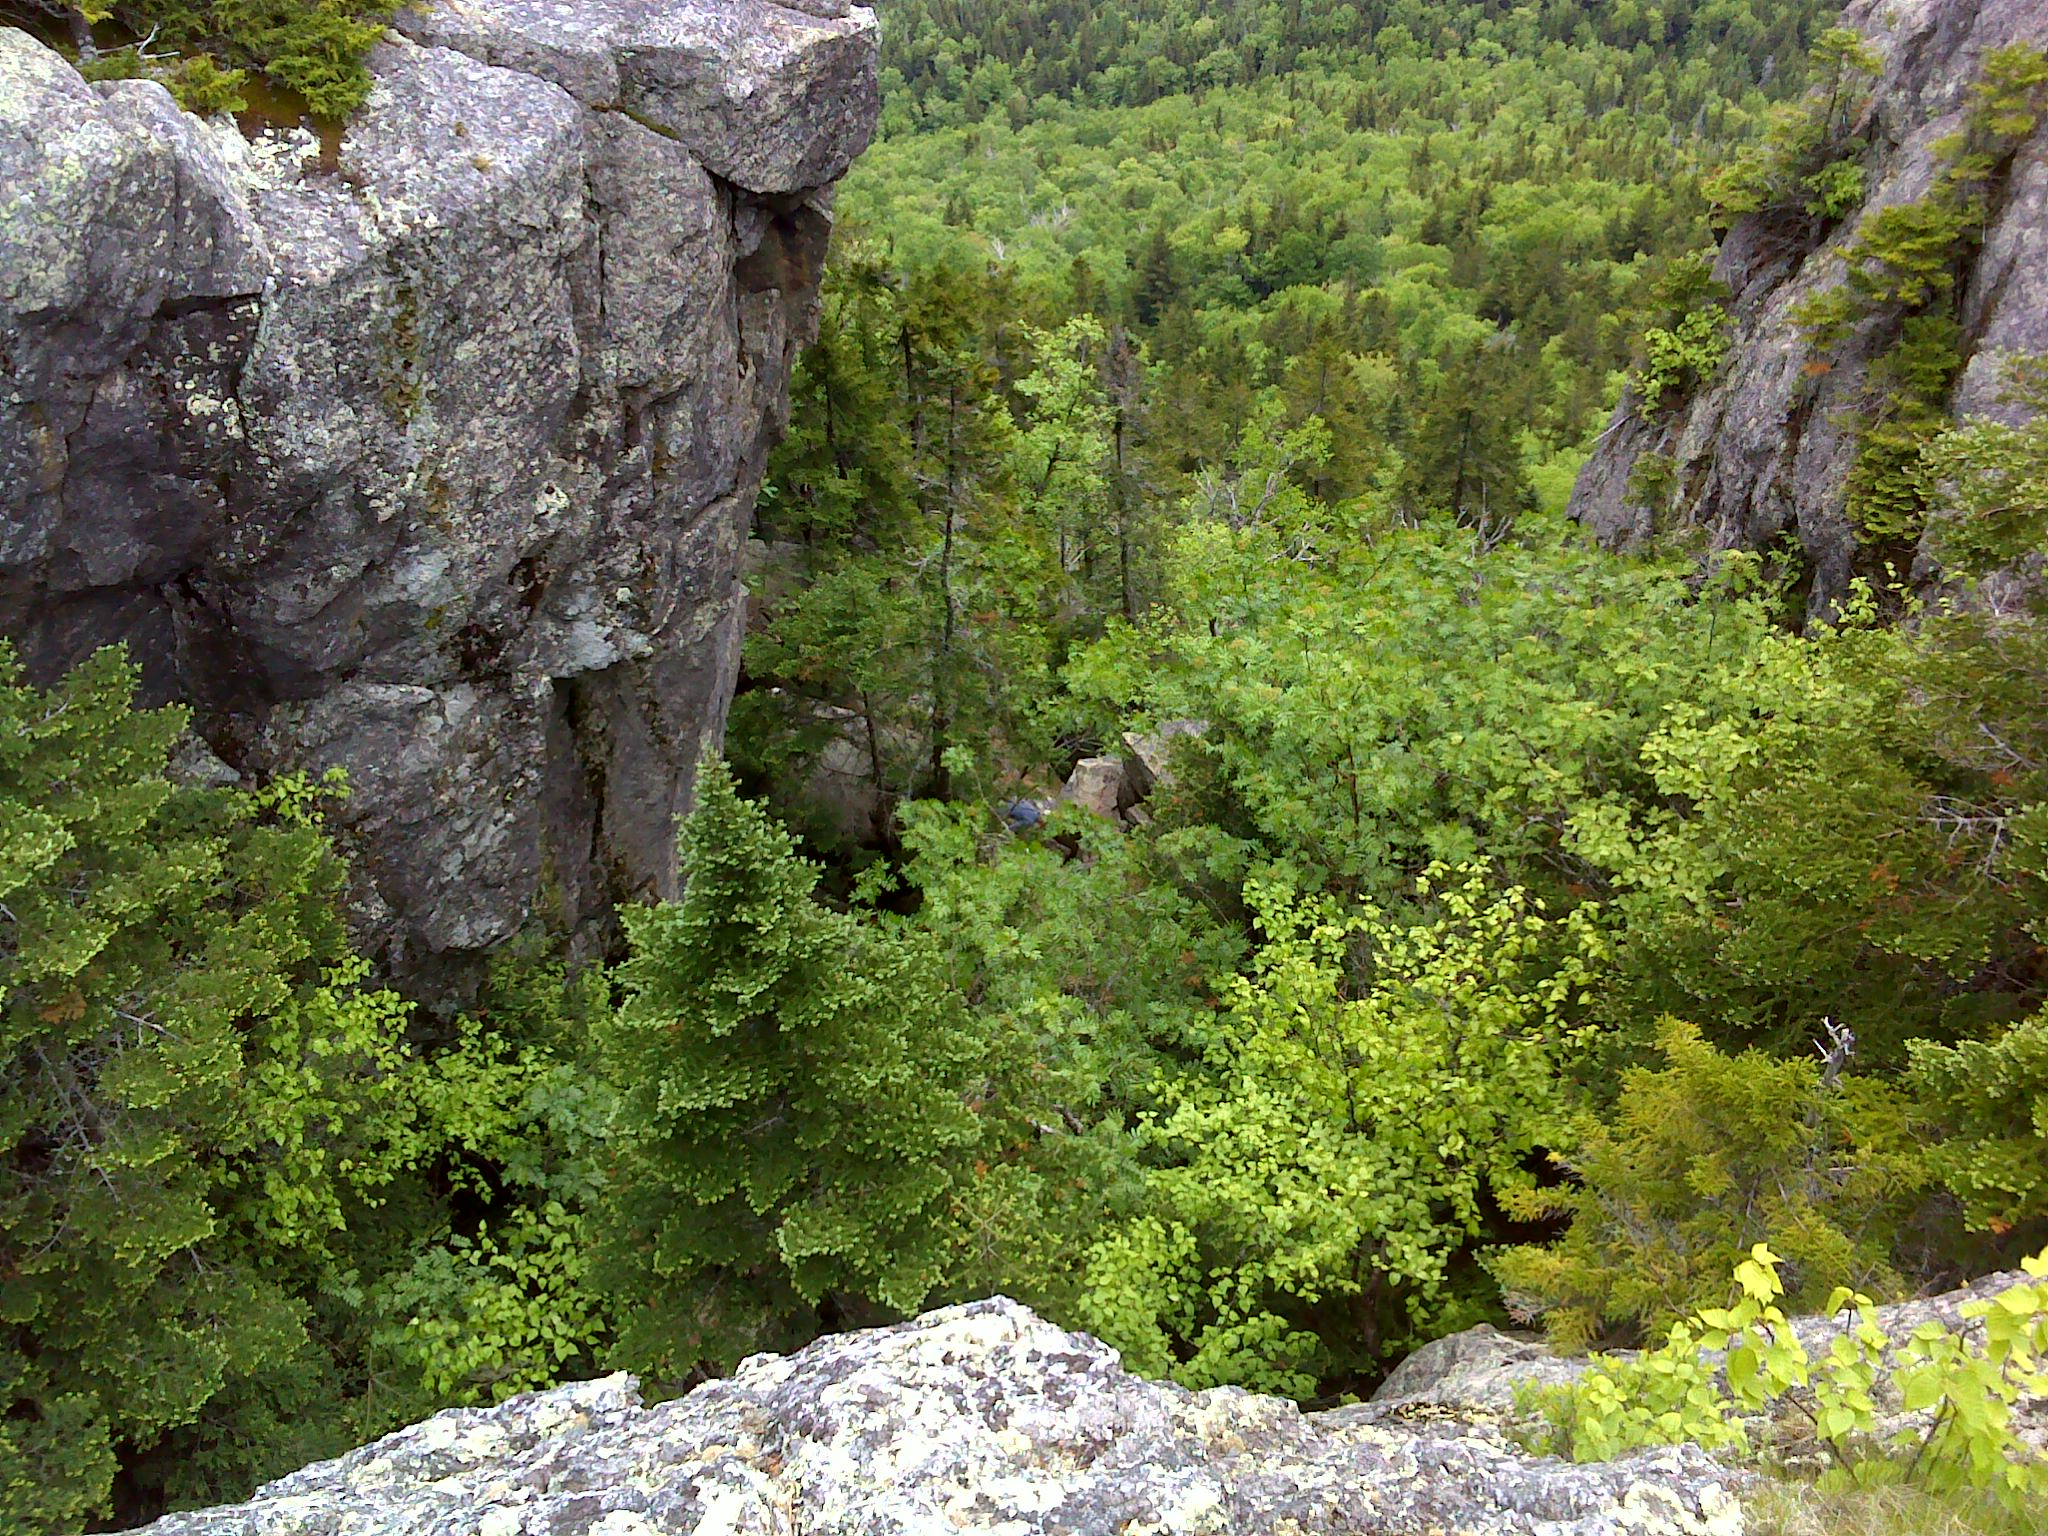 Looking down the chimney from the top. You can see a hiker standing on top of the boulder choke in the center of the frame